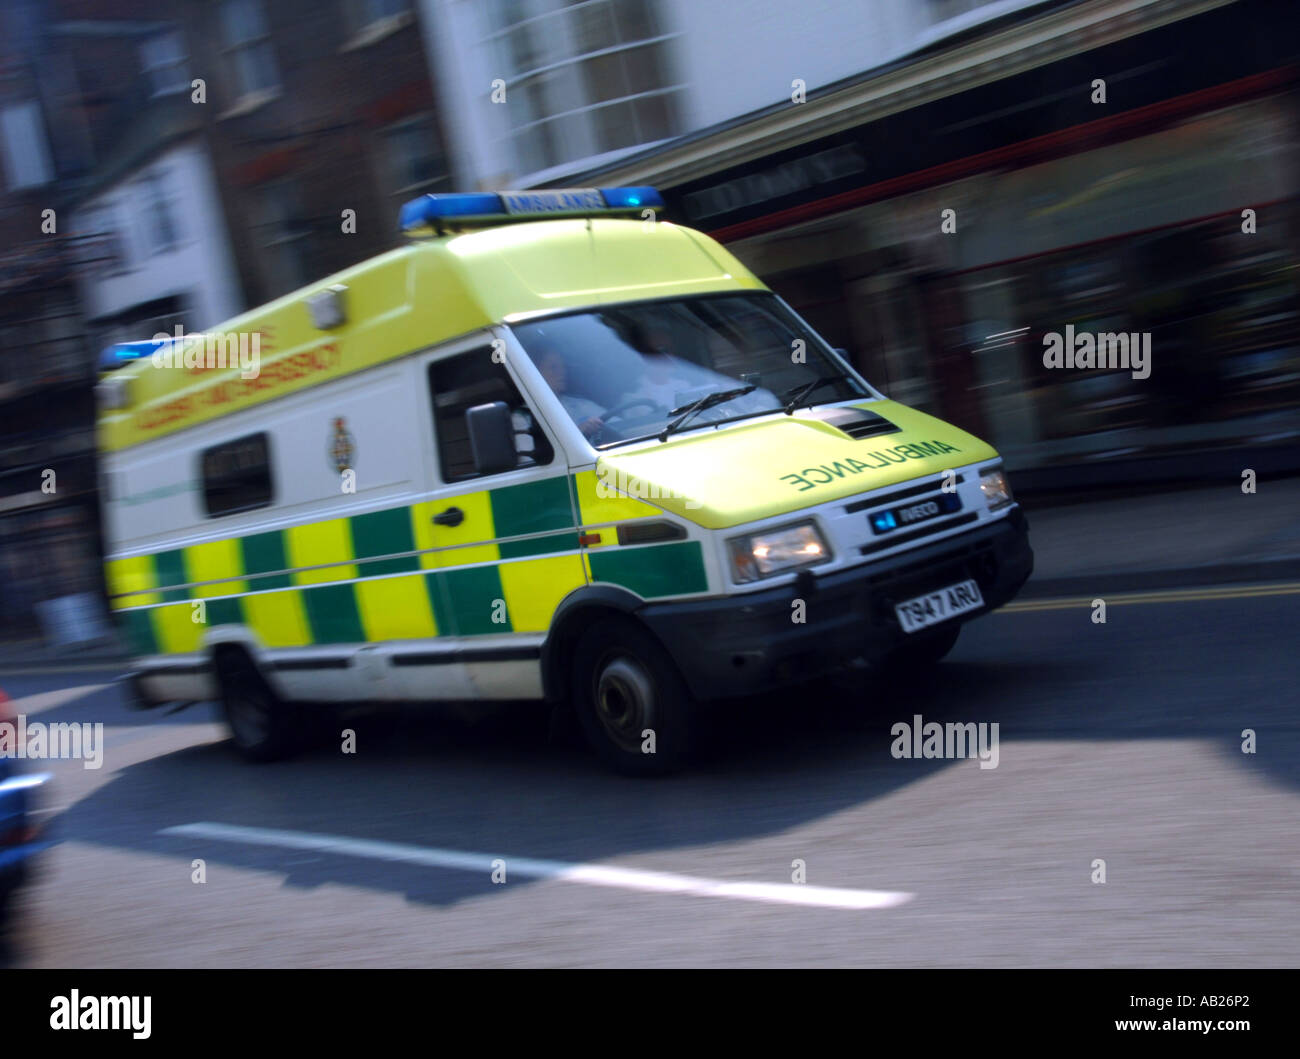 Ambulance on a call out, Britain UK - Stock Image